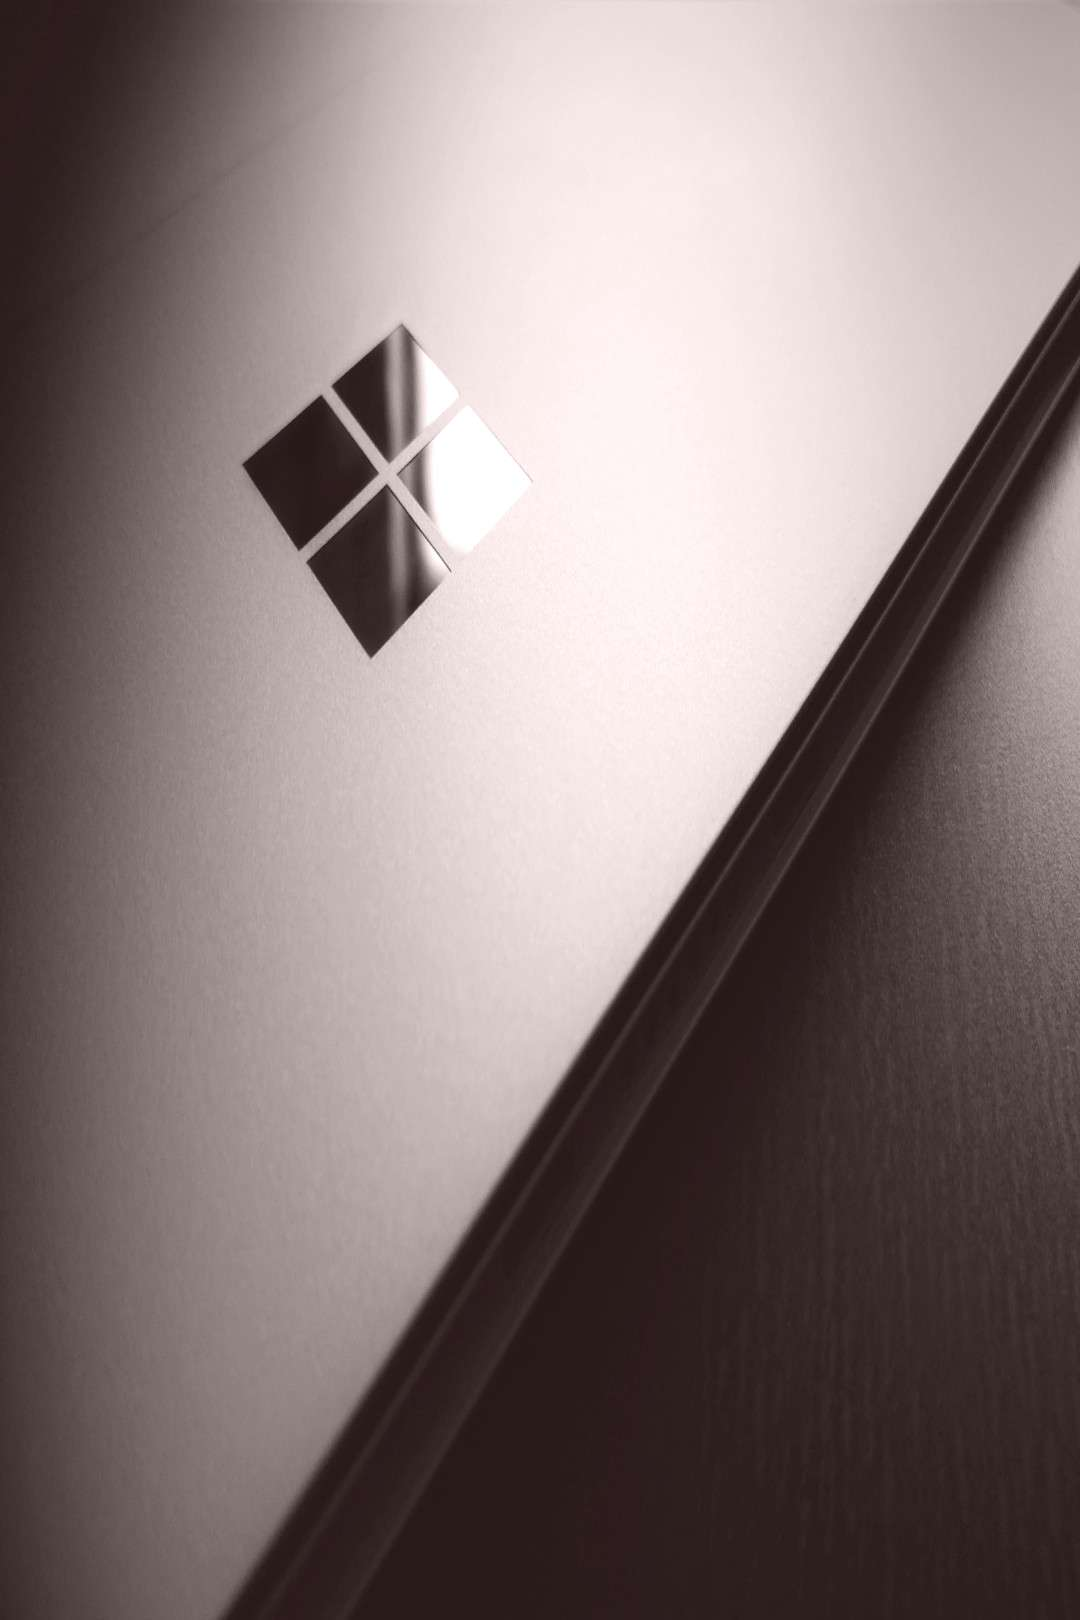 Microsoft Windows logo Microsoft Windows Windows 10 wooden surface